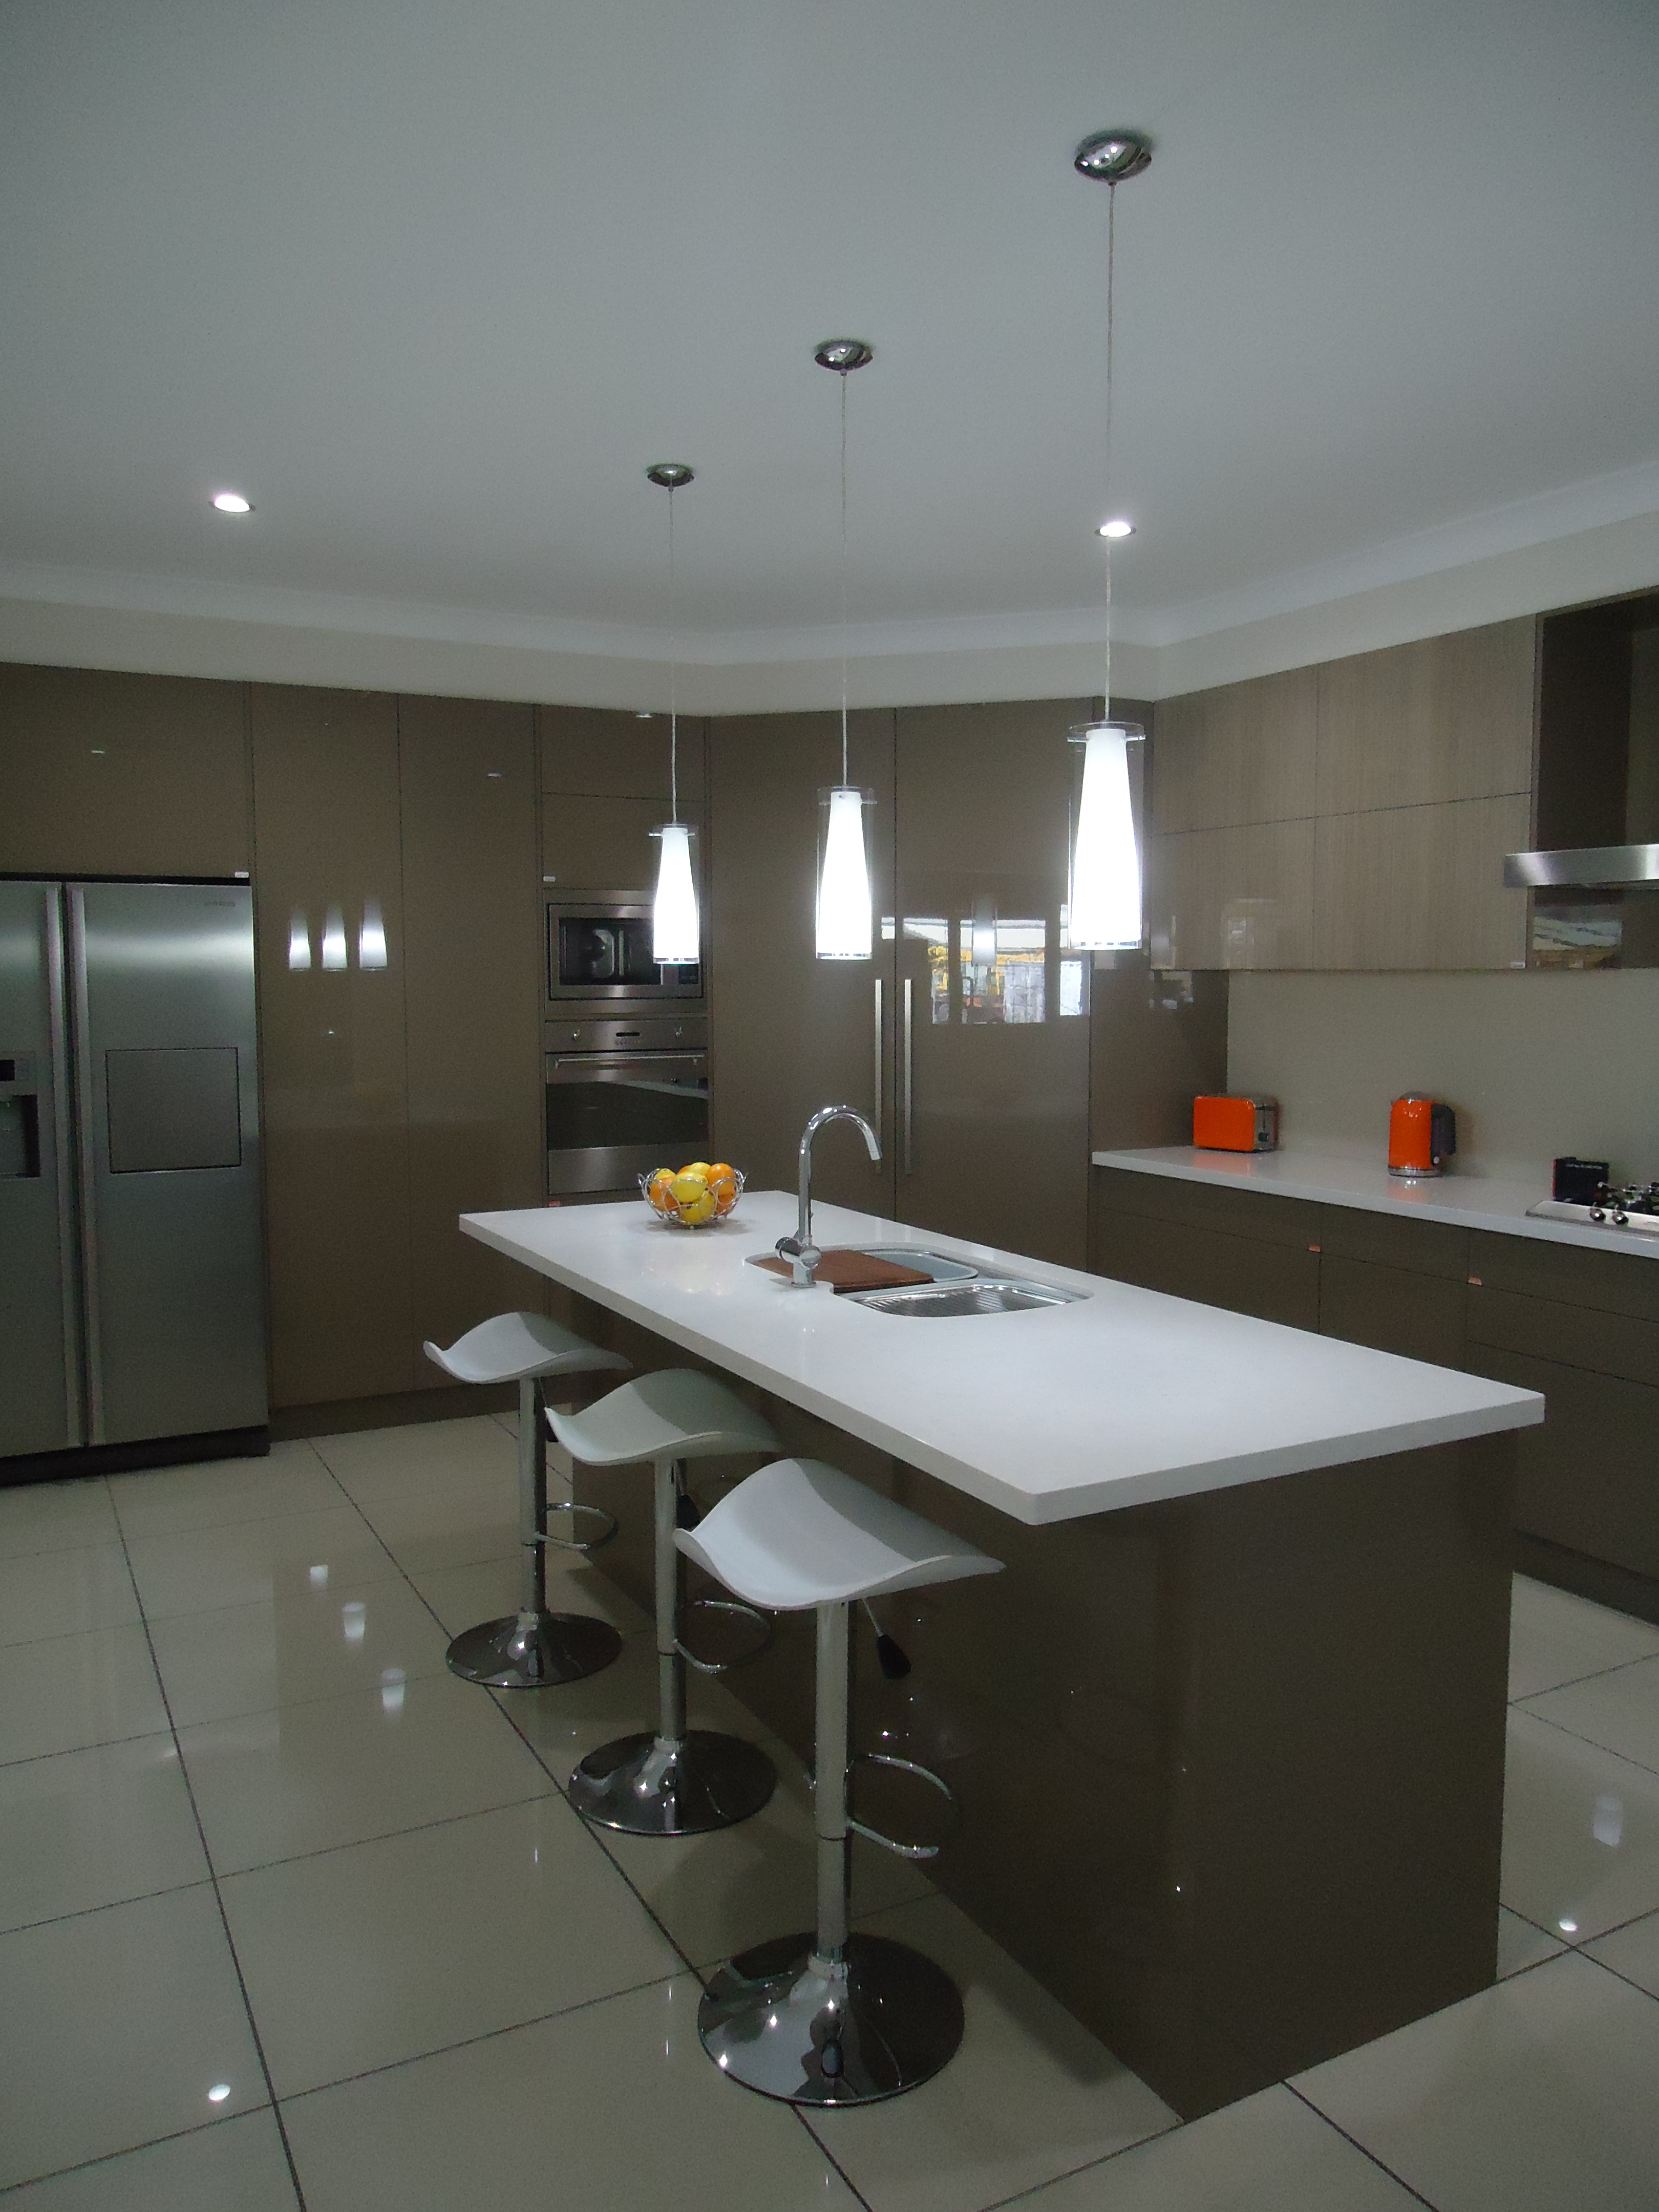 smw kitchens pty ltd pendant lights over island bench